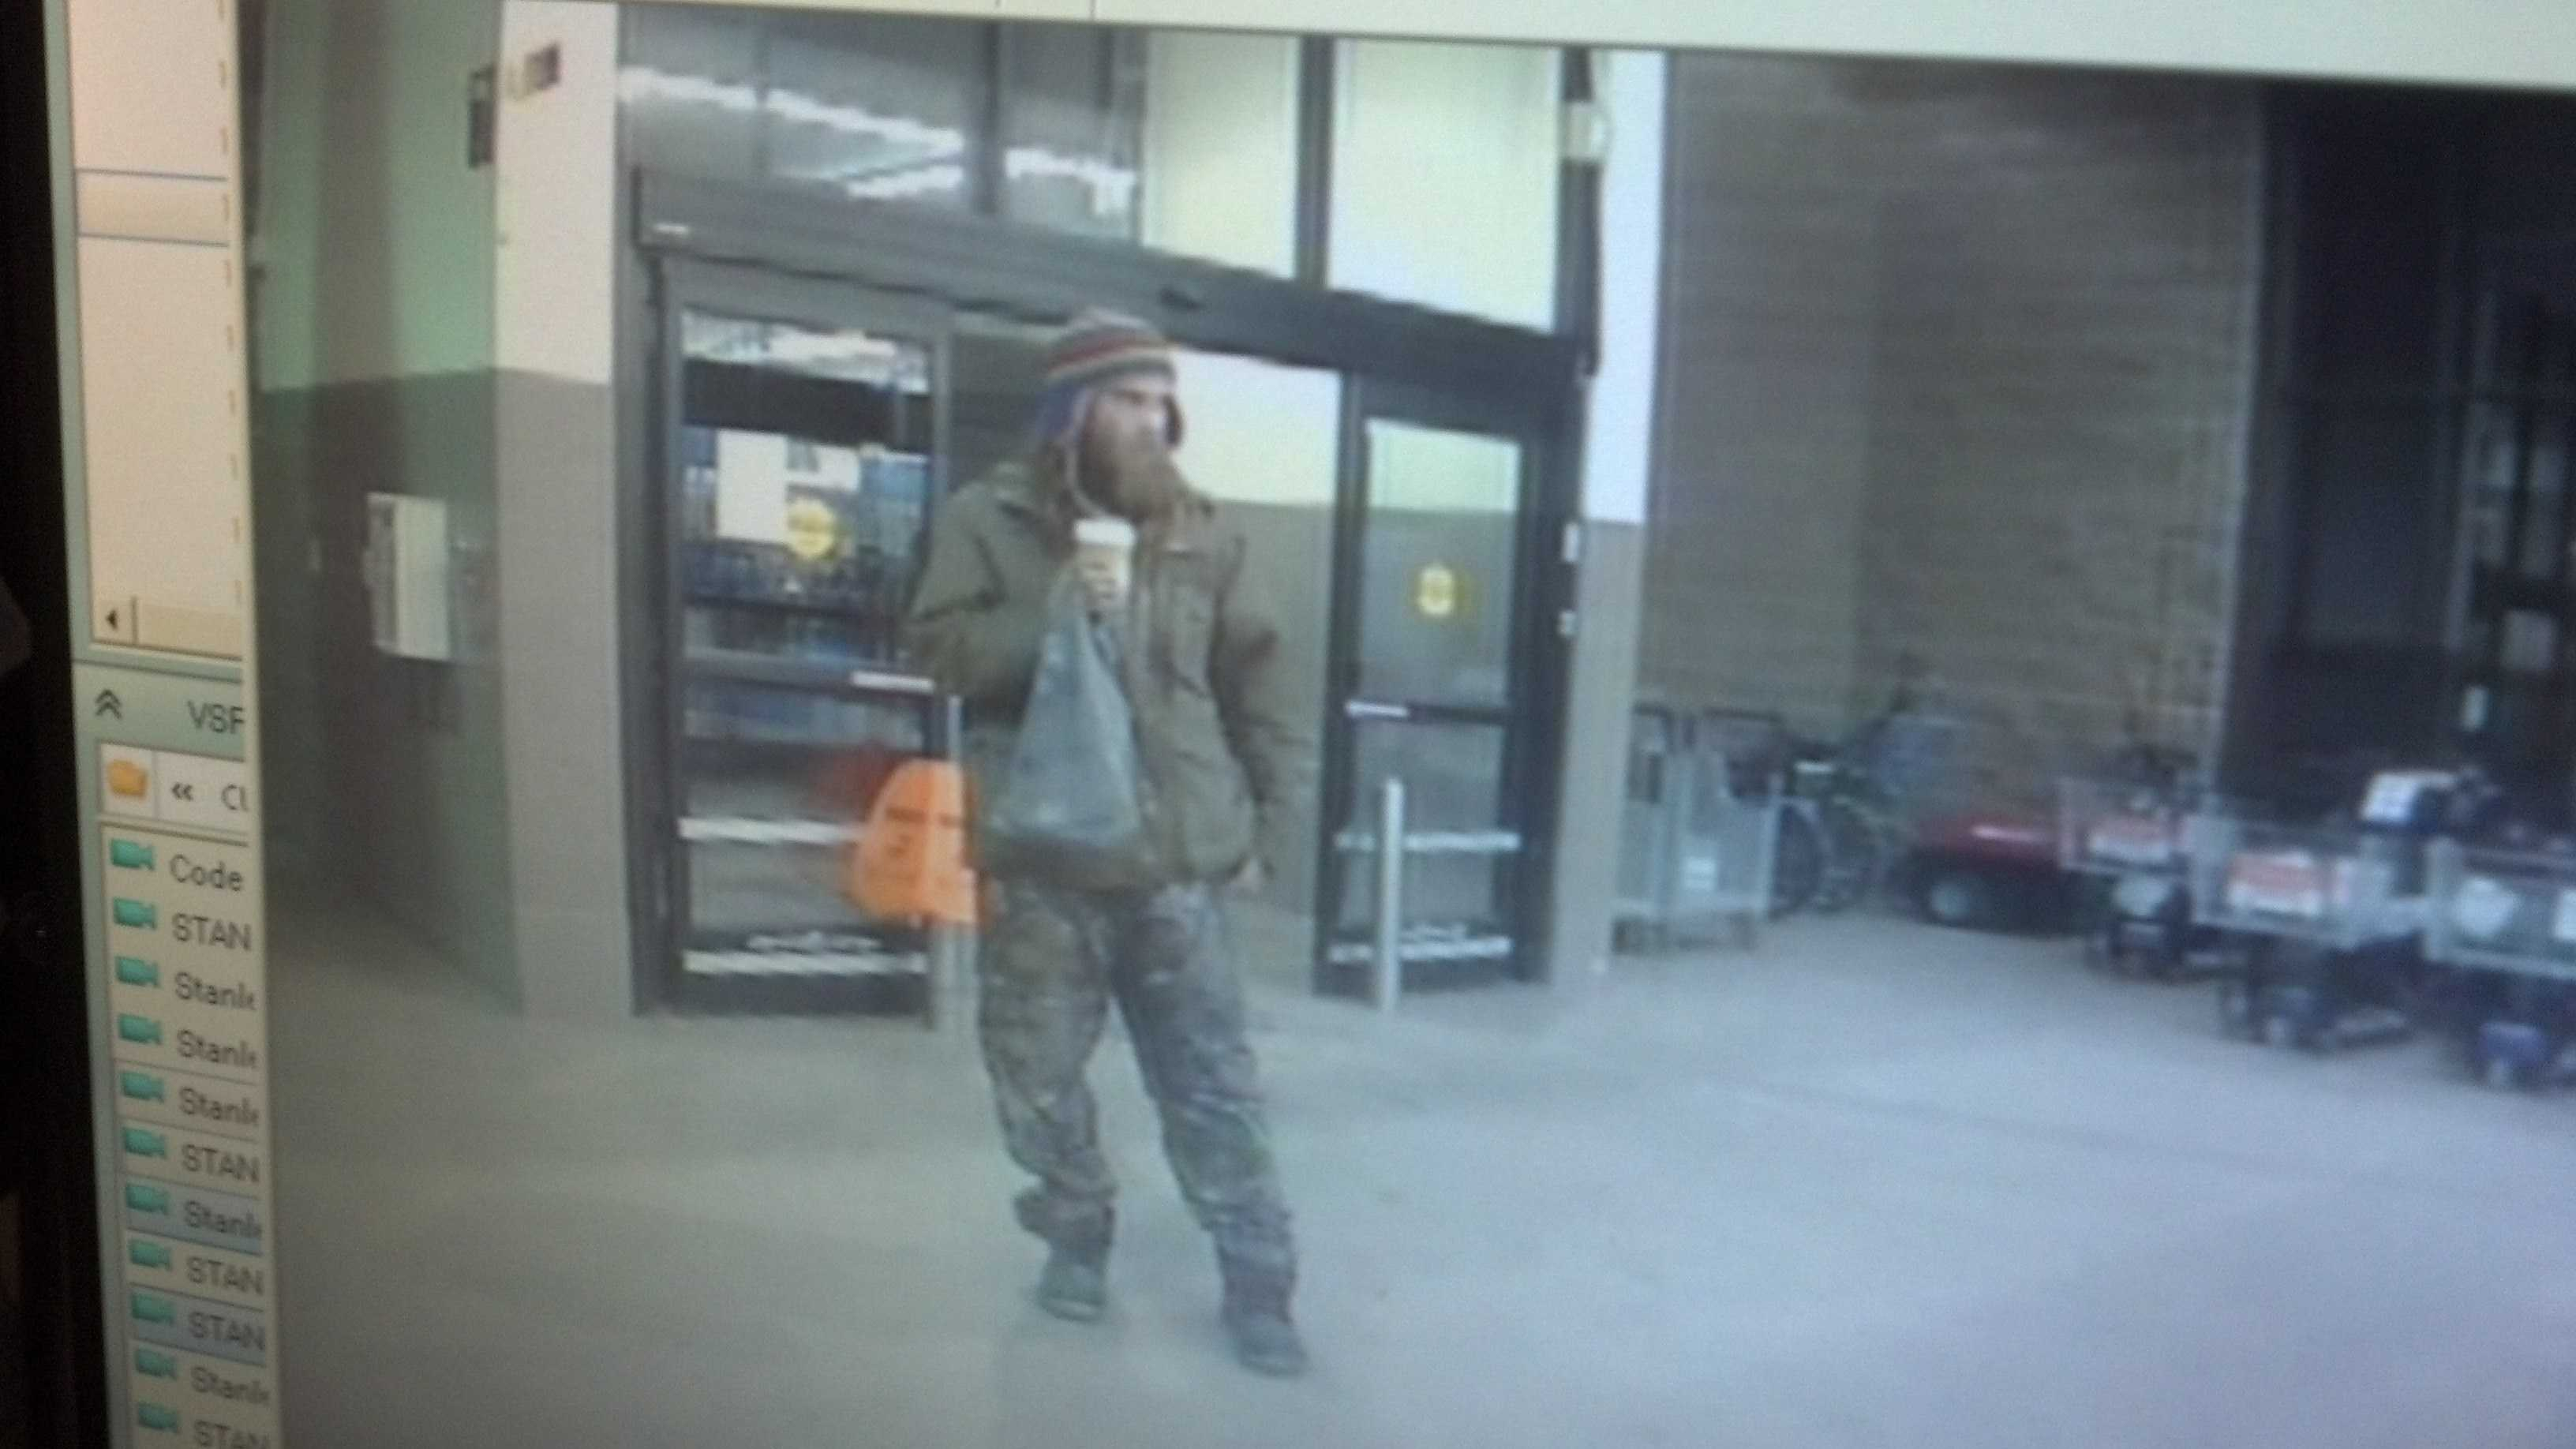 04-26-13 Police looking to identify man suspected in Walmart theft - img 1